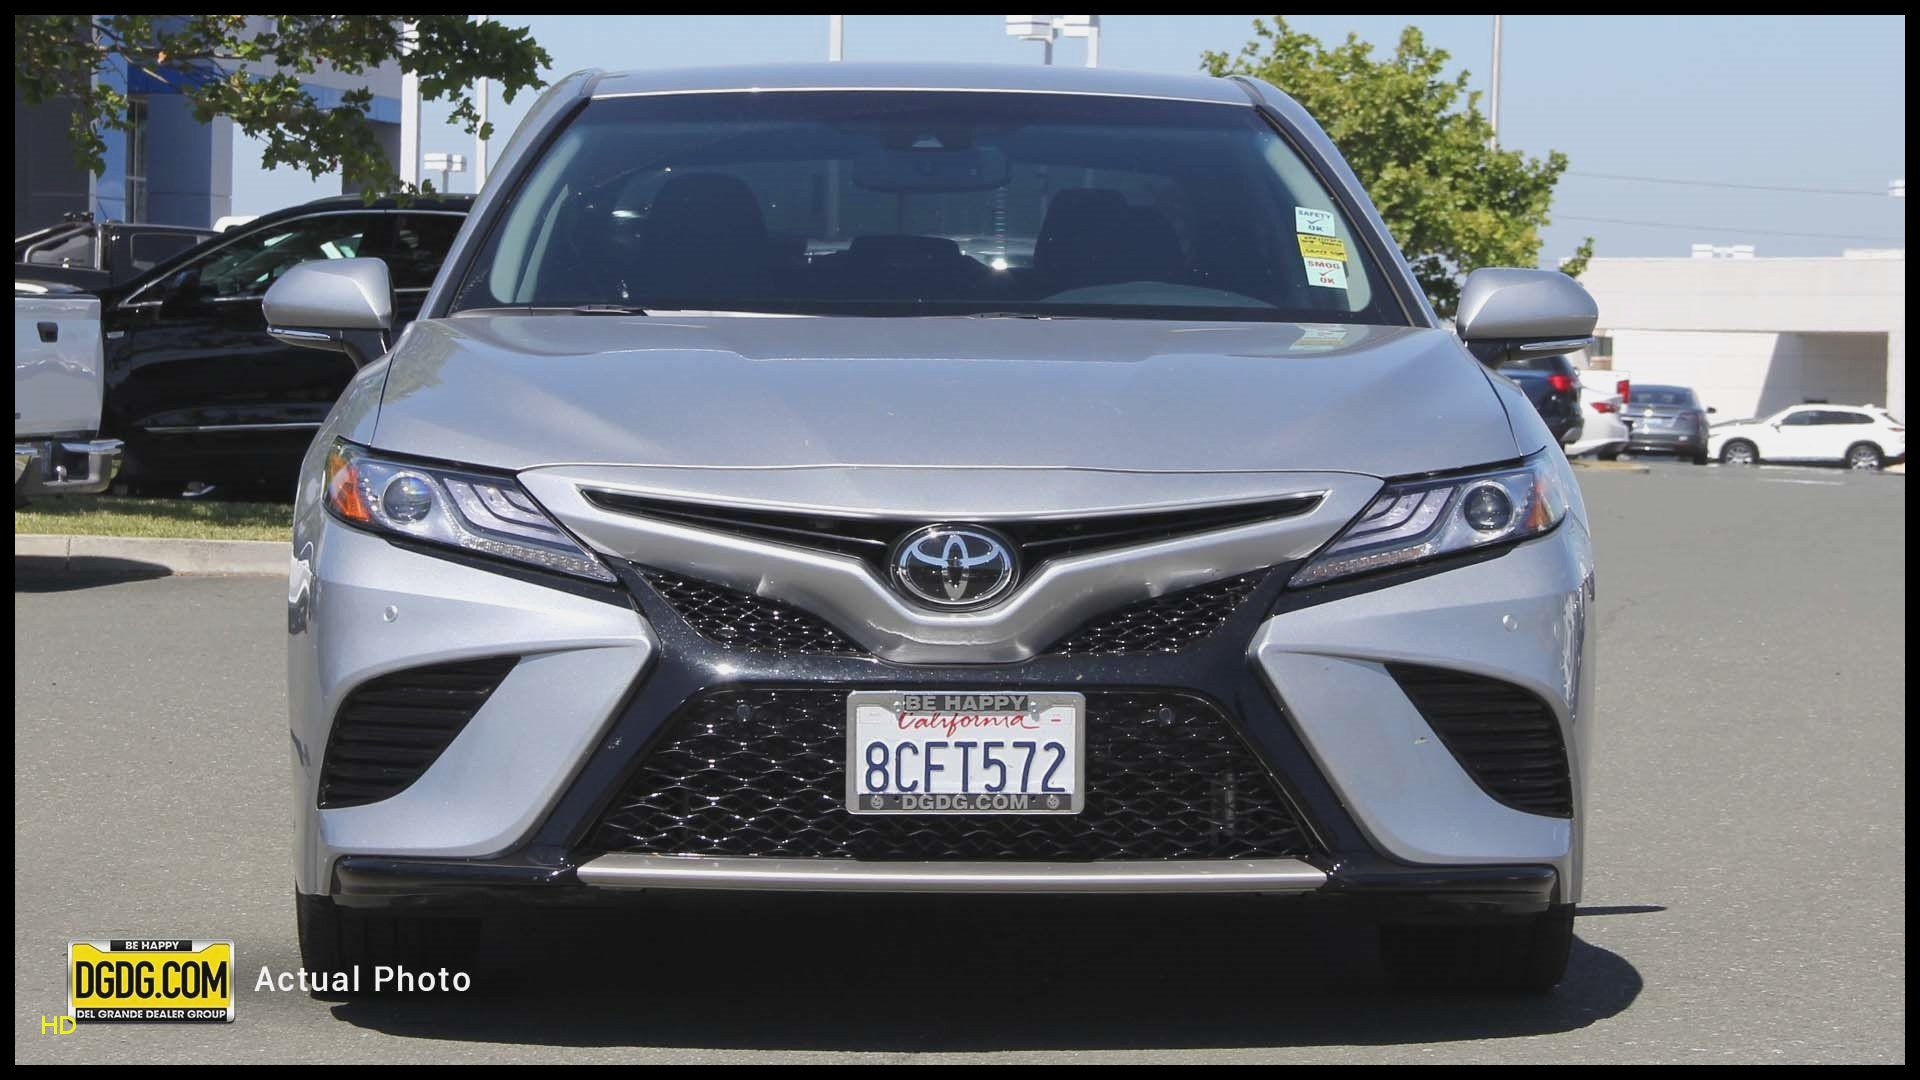 Kelley Blue Book Dealer Invoice Pre Owned 2018 toyota Camry Xse 4dr Car In Vallejo Upr Xa